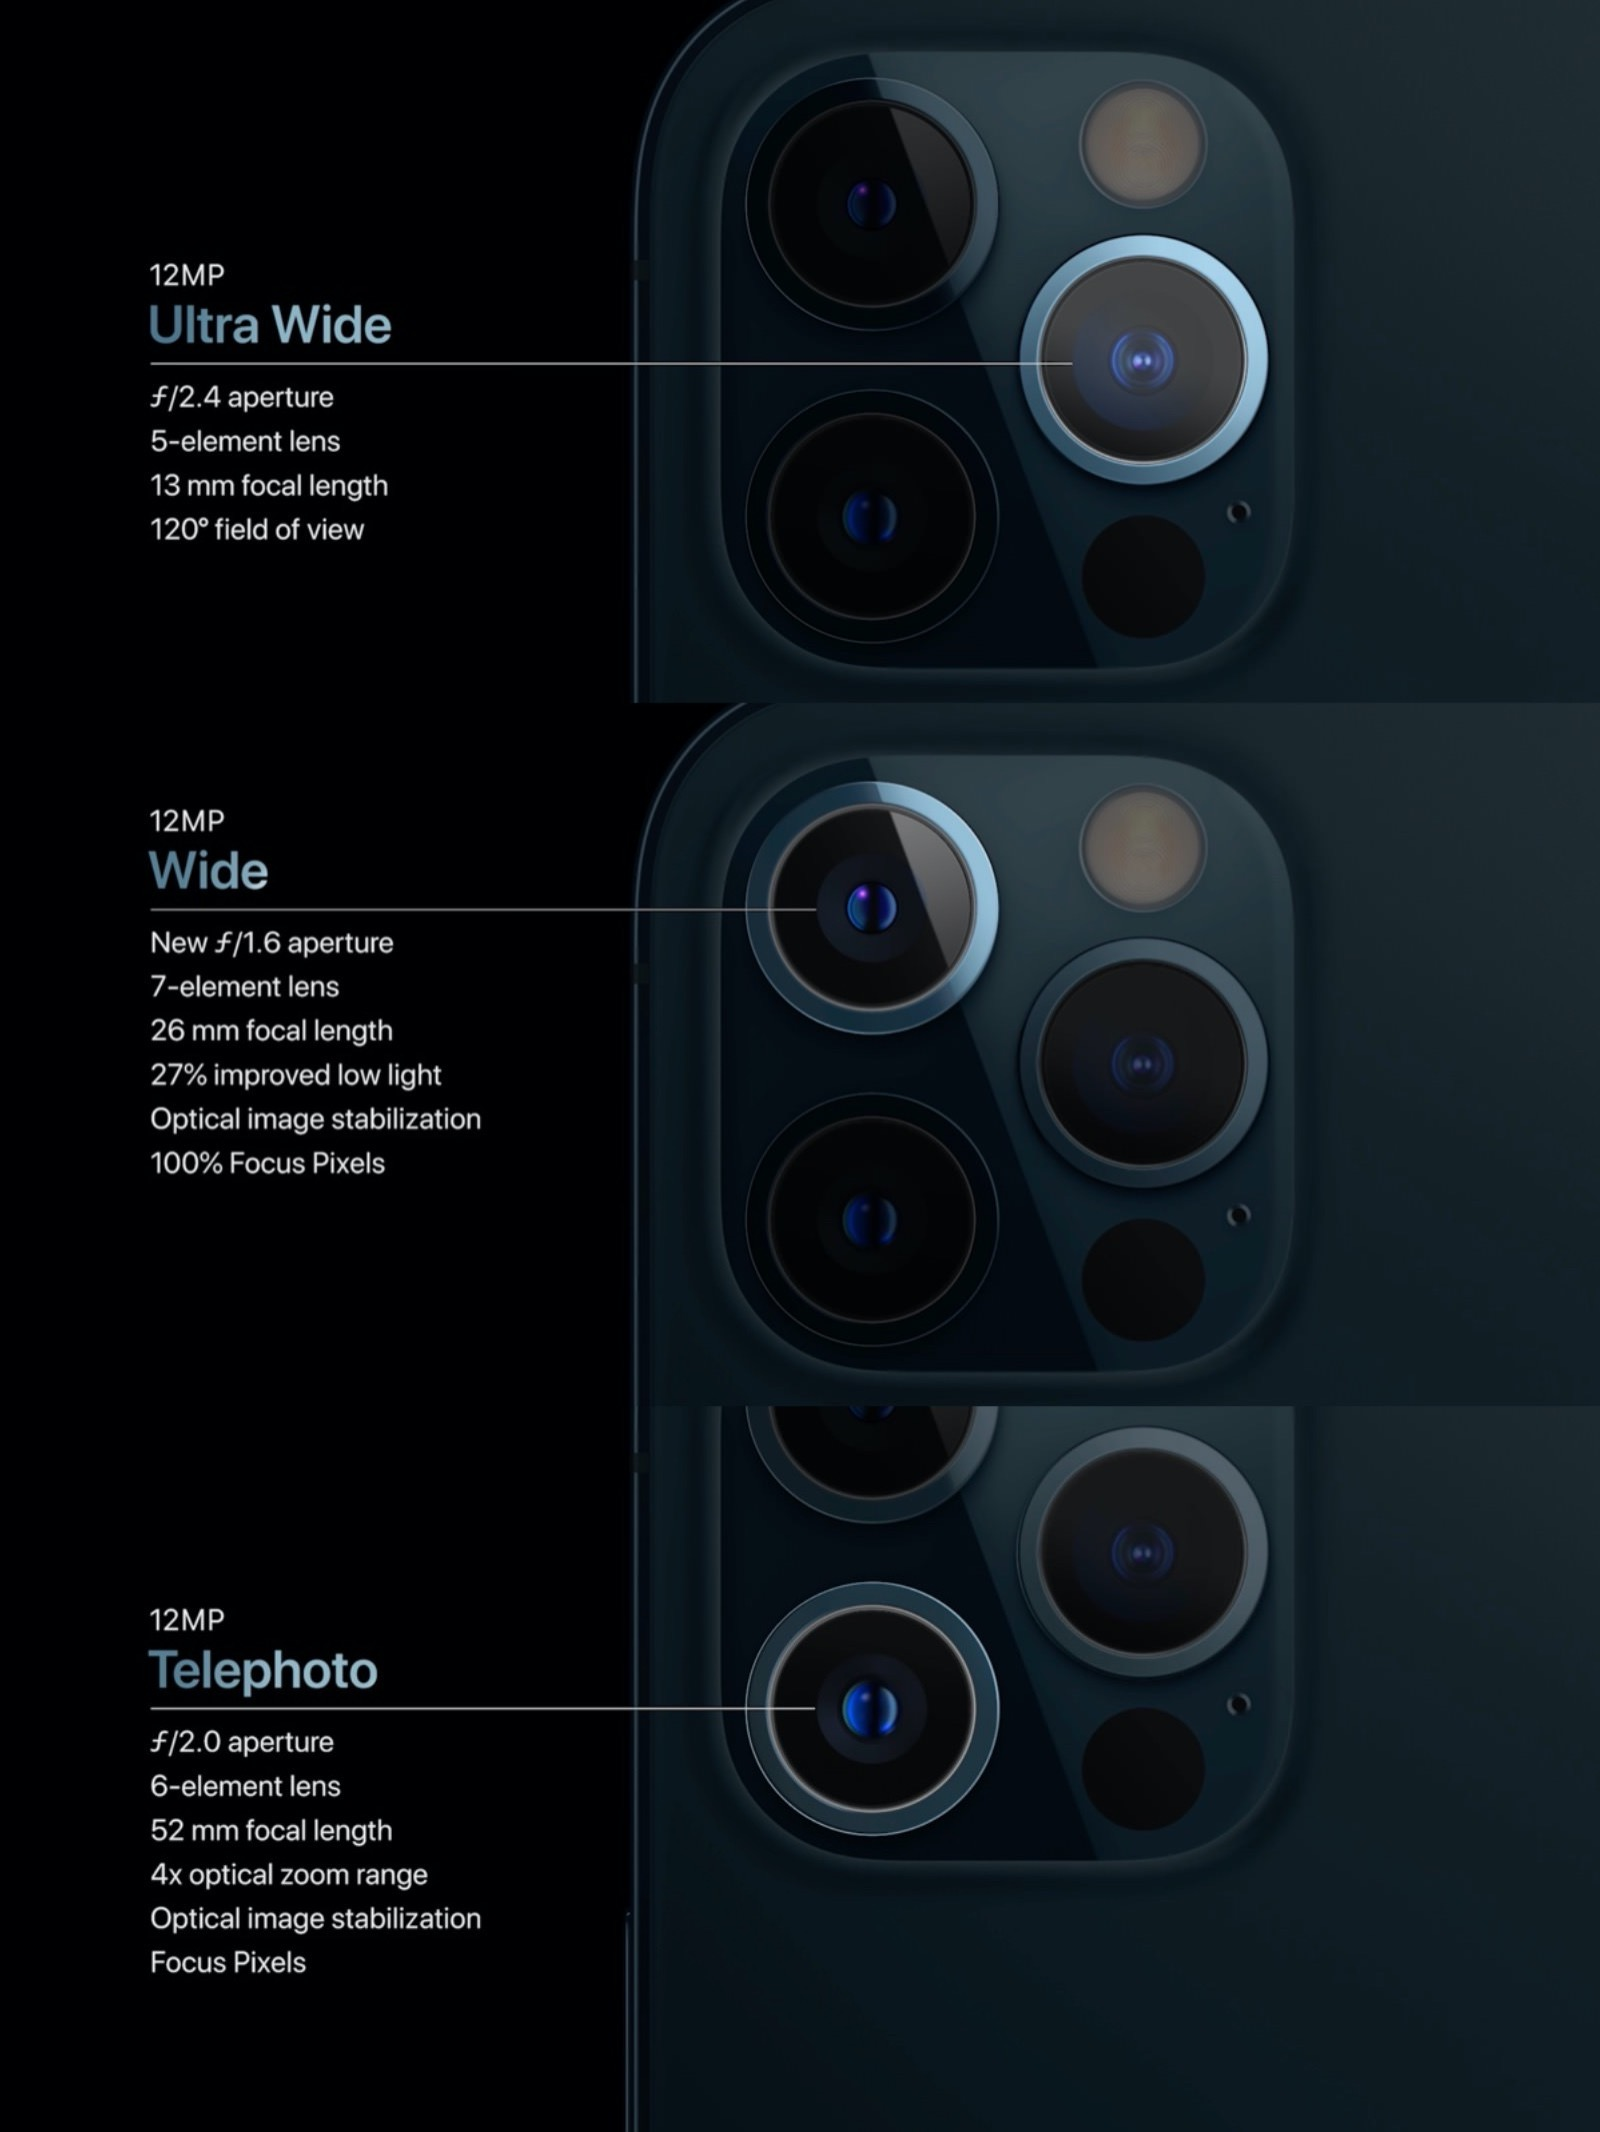 iphone12pro-camera-lens-specs.jpg